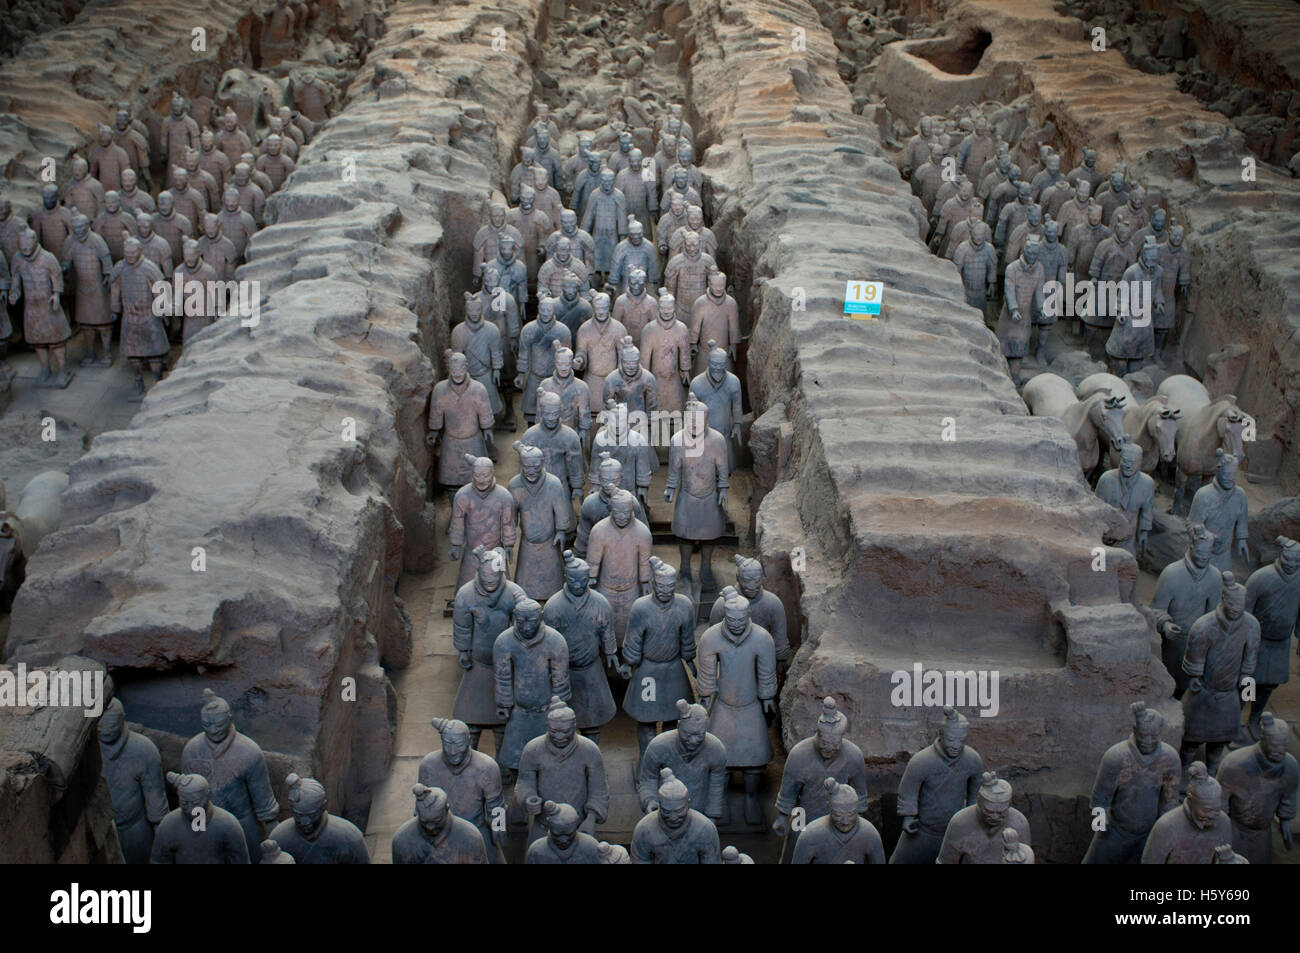 Terracotta Warriors Army, Pit Number 1, Xian, Shaanxi, China, Asia. An ancient collection of sculptures depicting - Stock Image